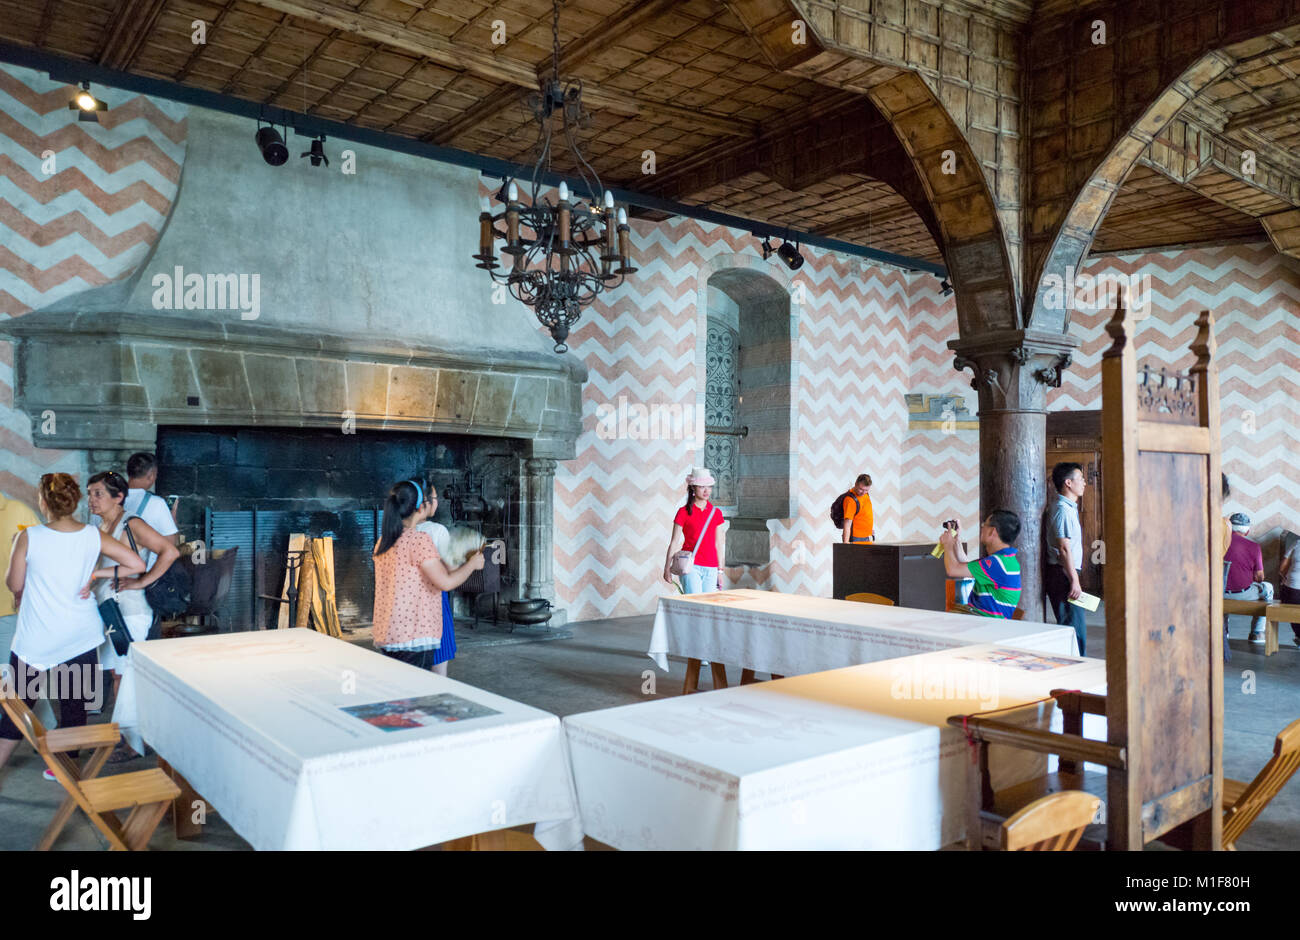 Montreux, Switzerland, Tourists in the main hall of the Chillon castle on the Leman lake - Stock Image